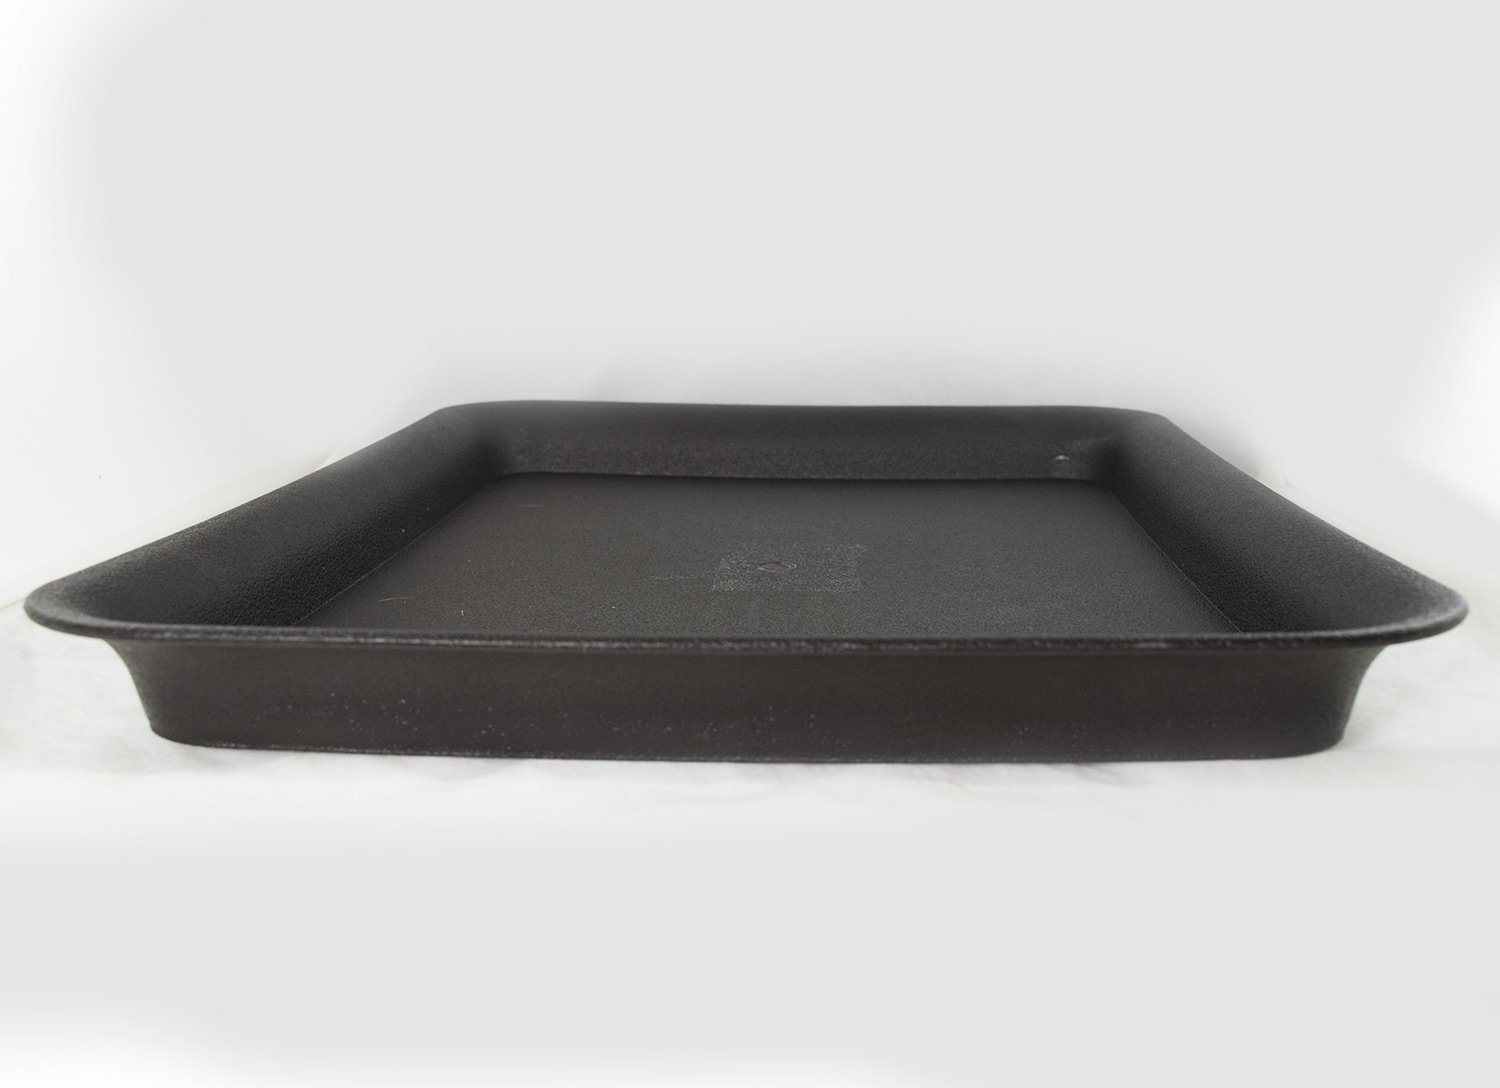 Extra Large Humidity Tray for Bonsai Trees & Indoor Plants 23.5''x 16.5''x 1.75''